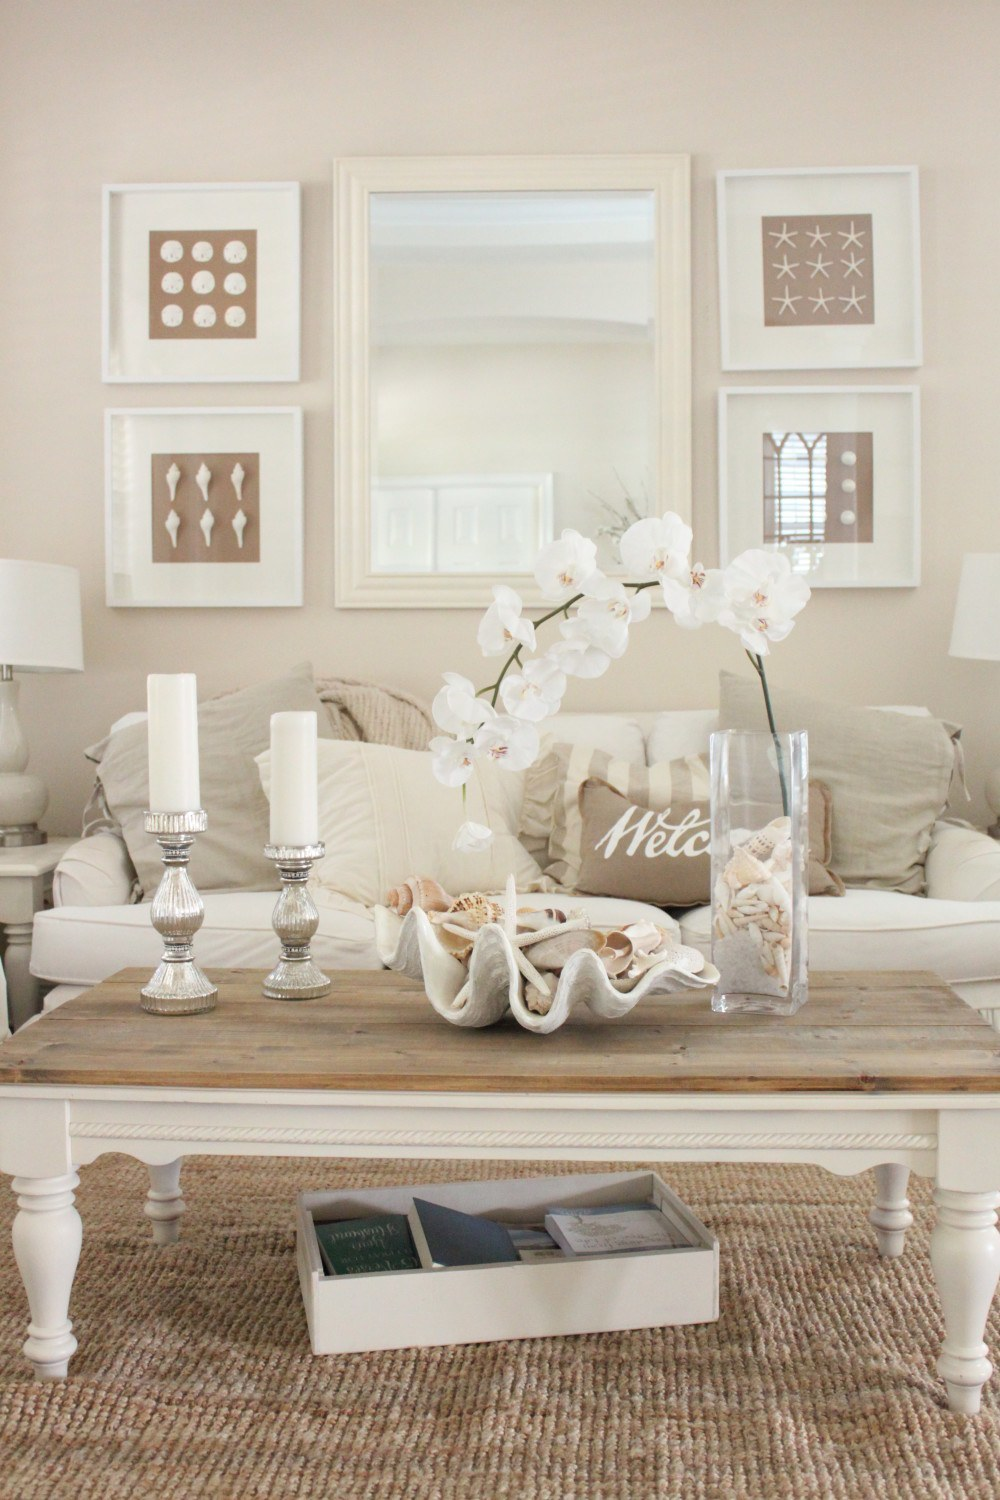 10 Living Room Decor Ideas To Brighten Your Home